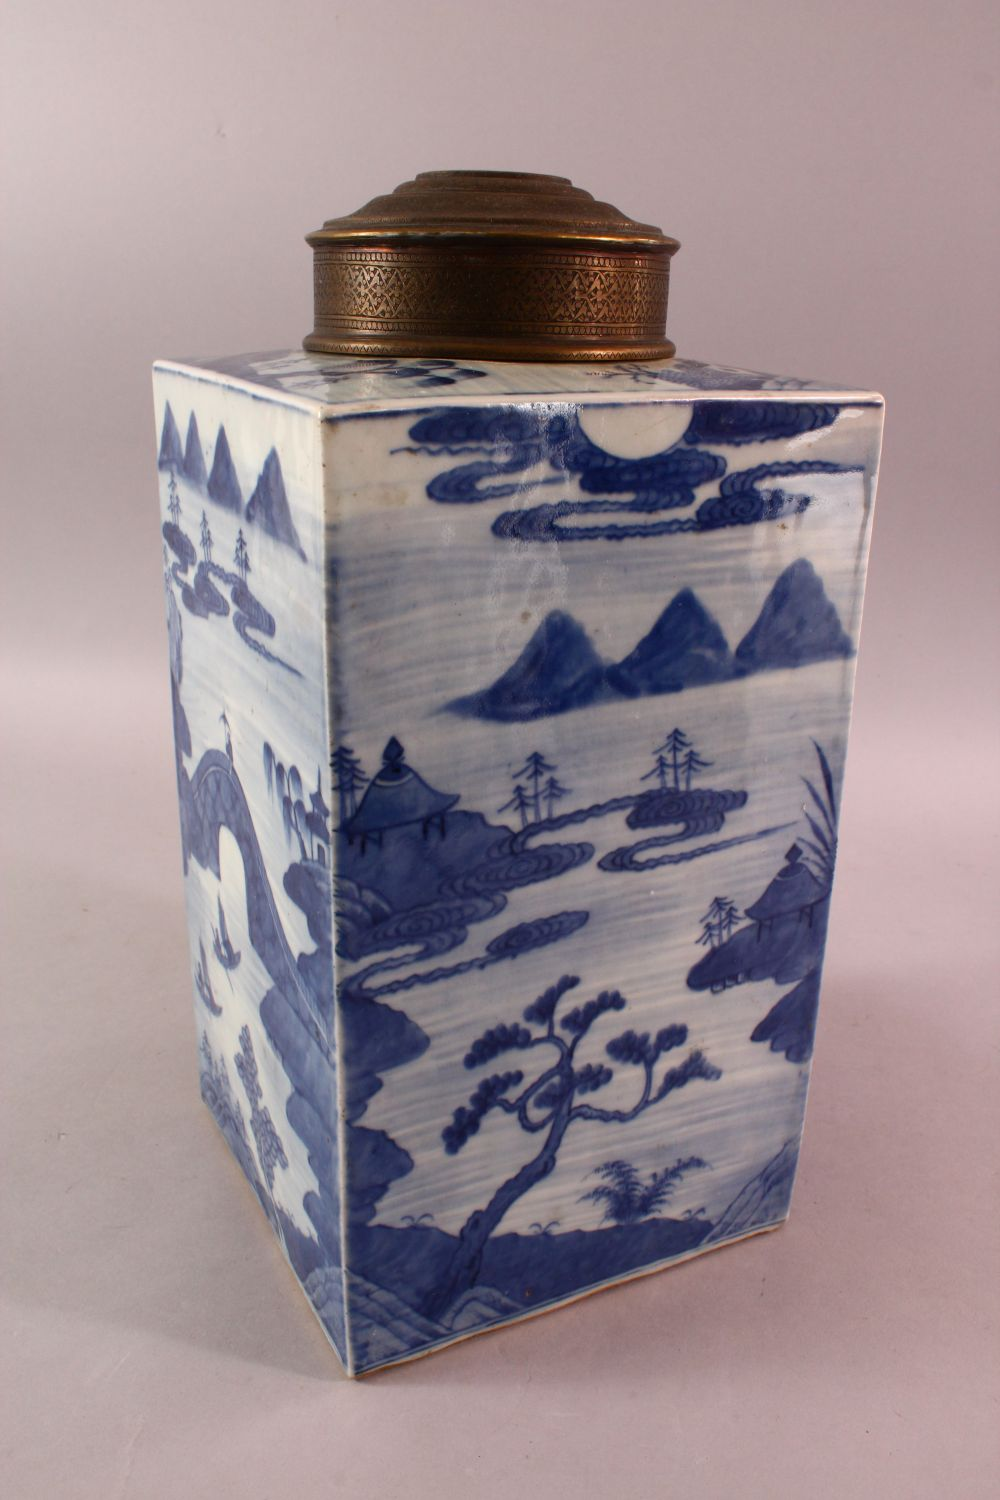 A LARGE CHINESE 18TH / 19TH CENTURY CHINESE BLUE & WHITE CADDY, decorated with landscape views, with - Image 2 of 5